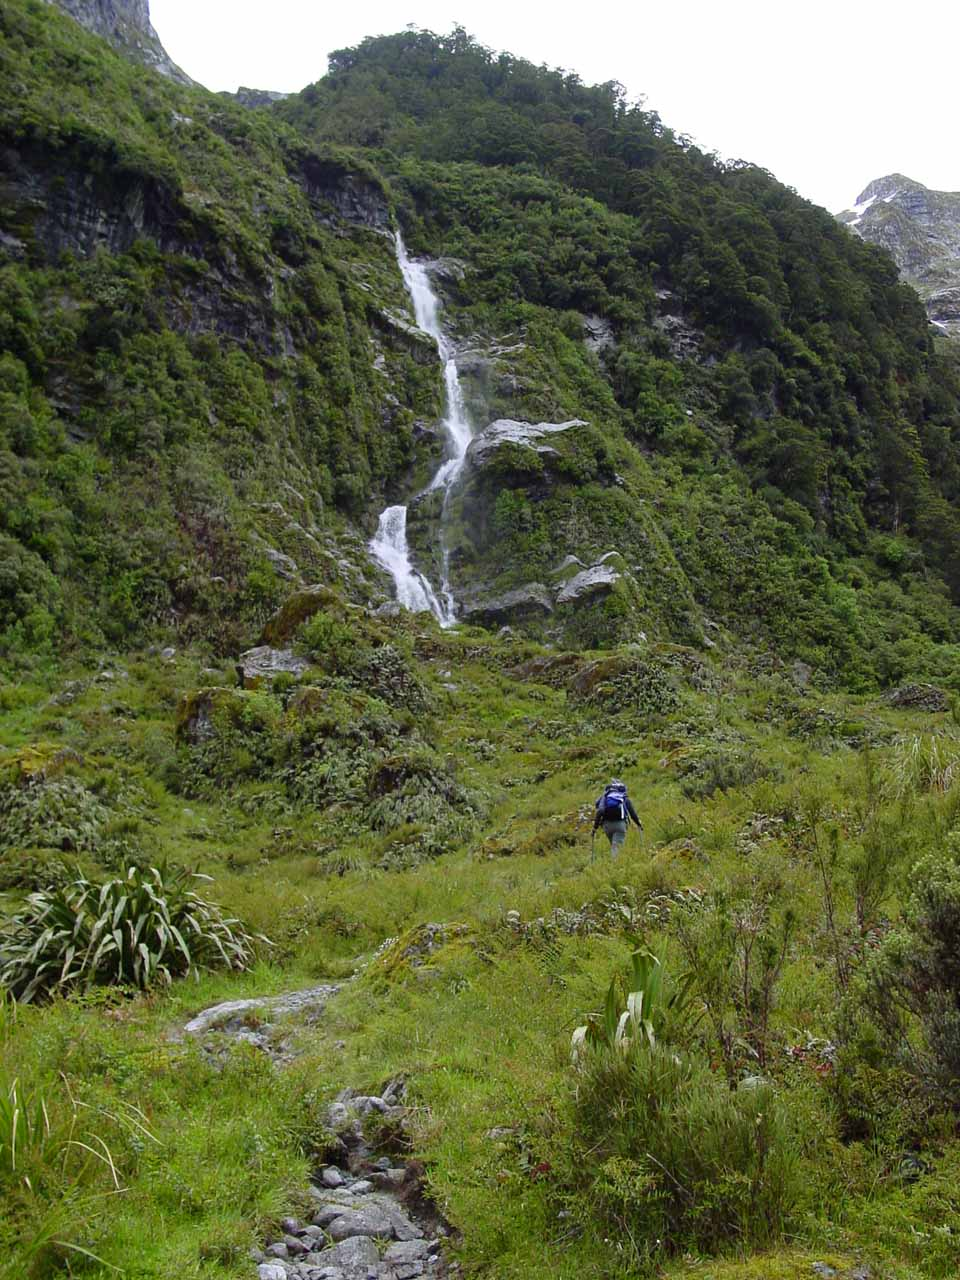 Looking up towards one of the waterfalls along the Milford Track on the way up to Mackinnon Pass